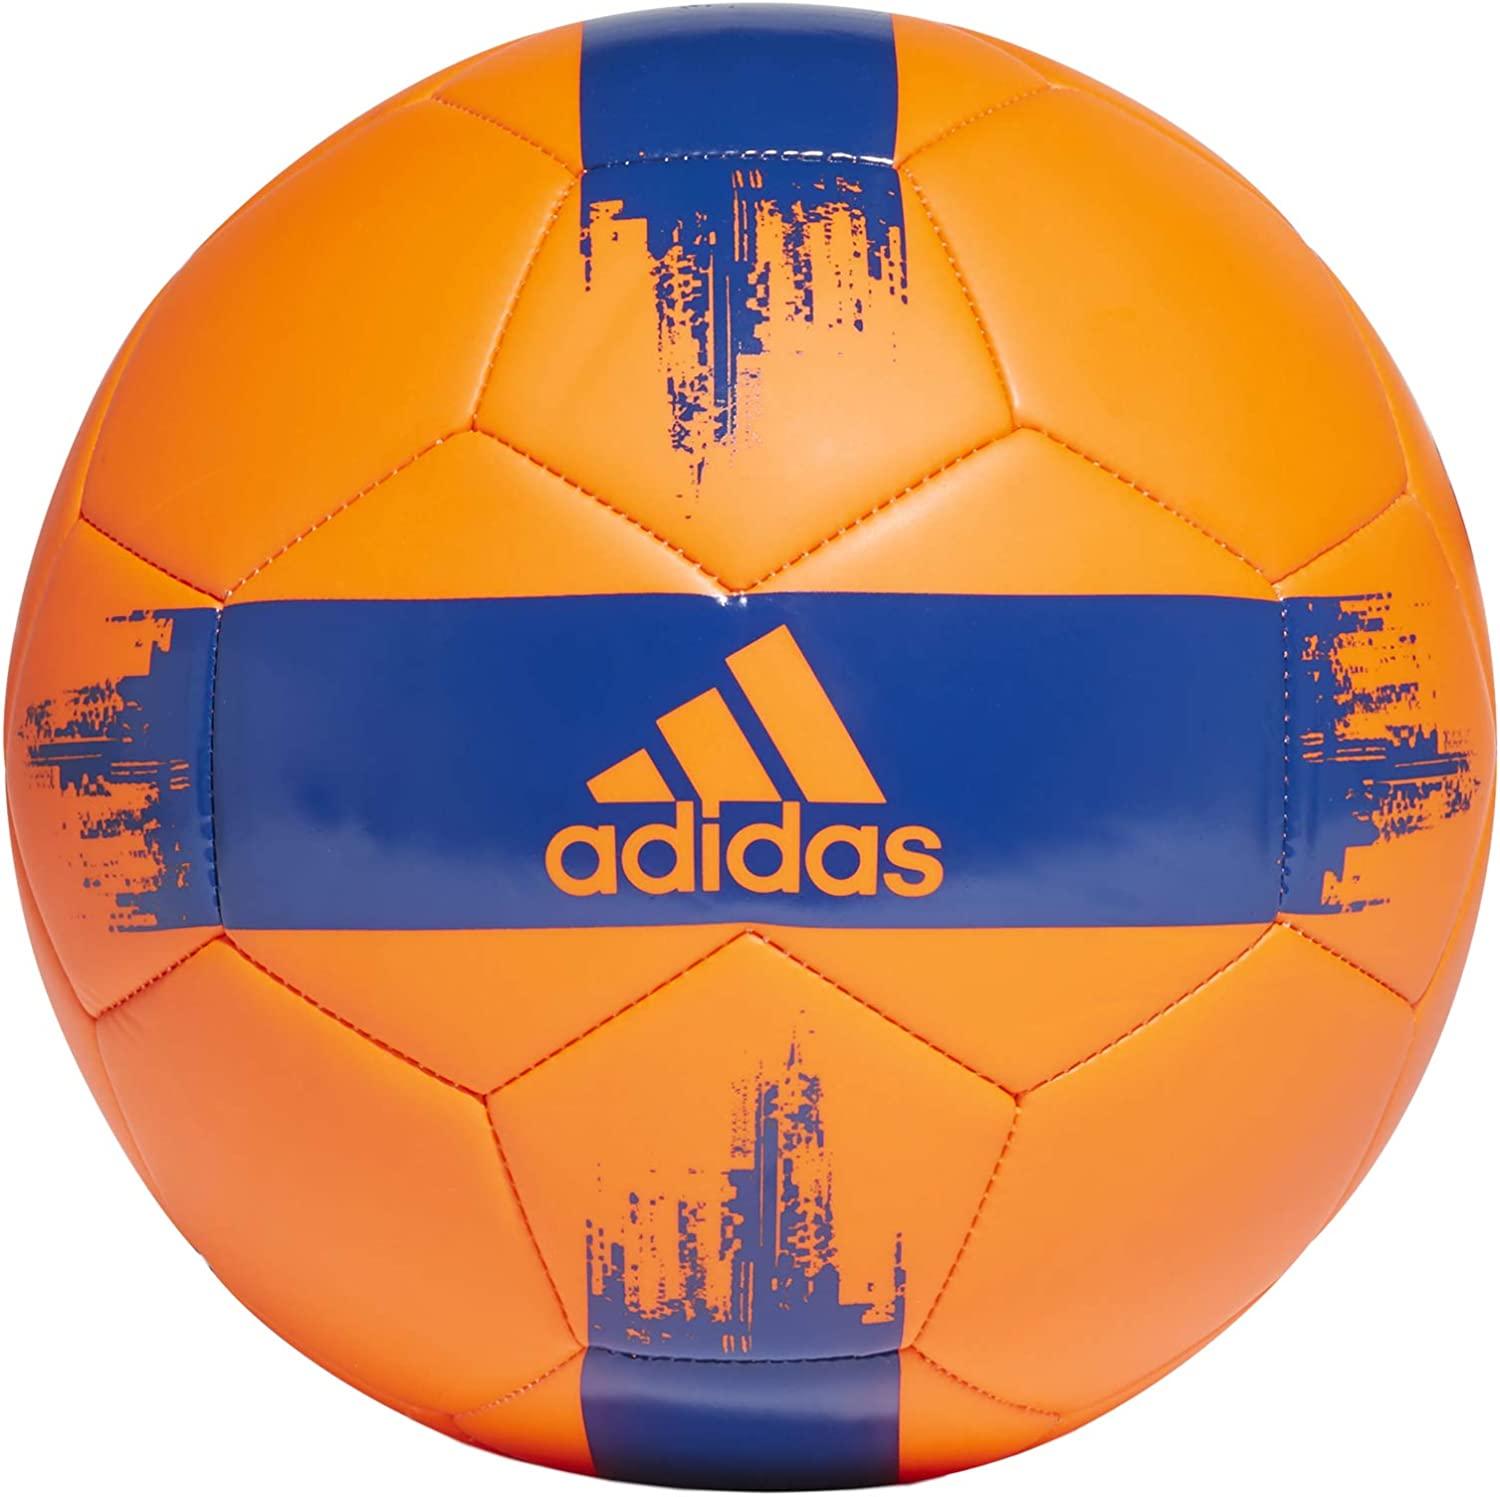 adidas EPP Club New products, world's highest quality popular! Credence